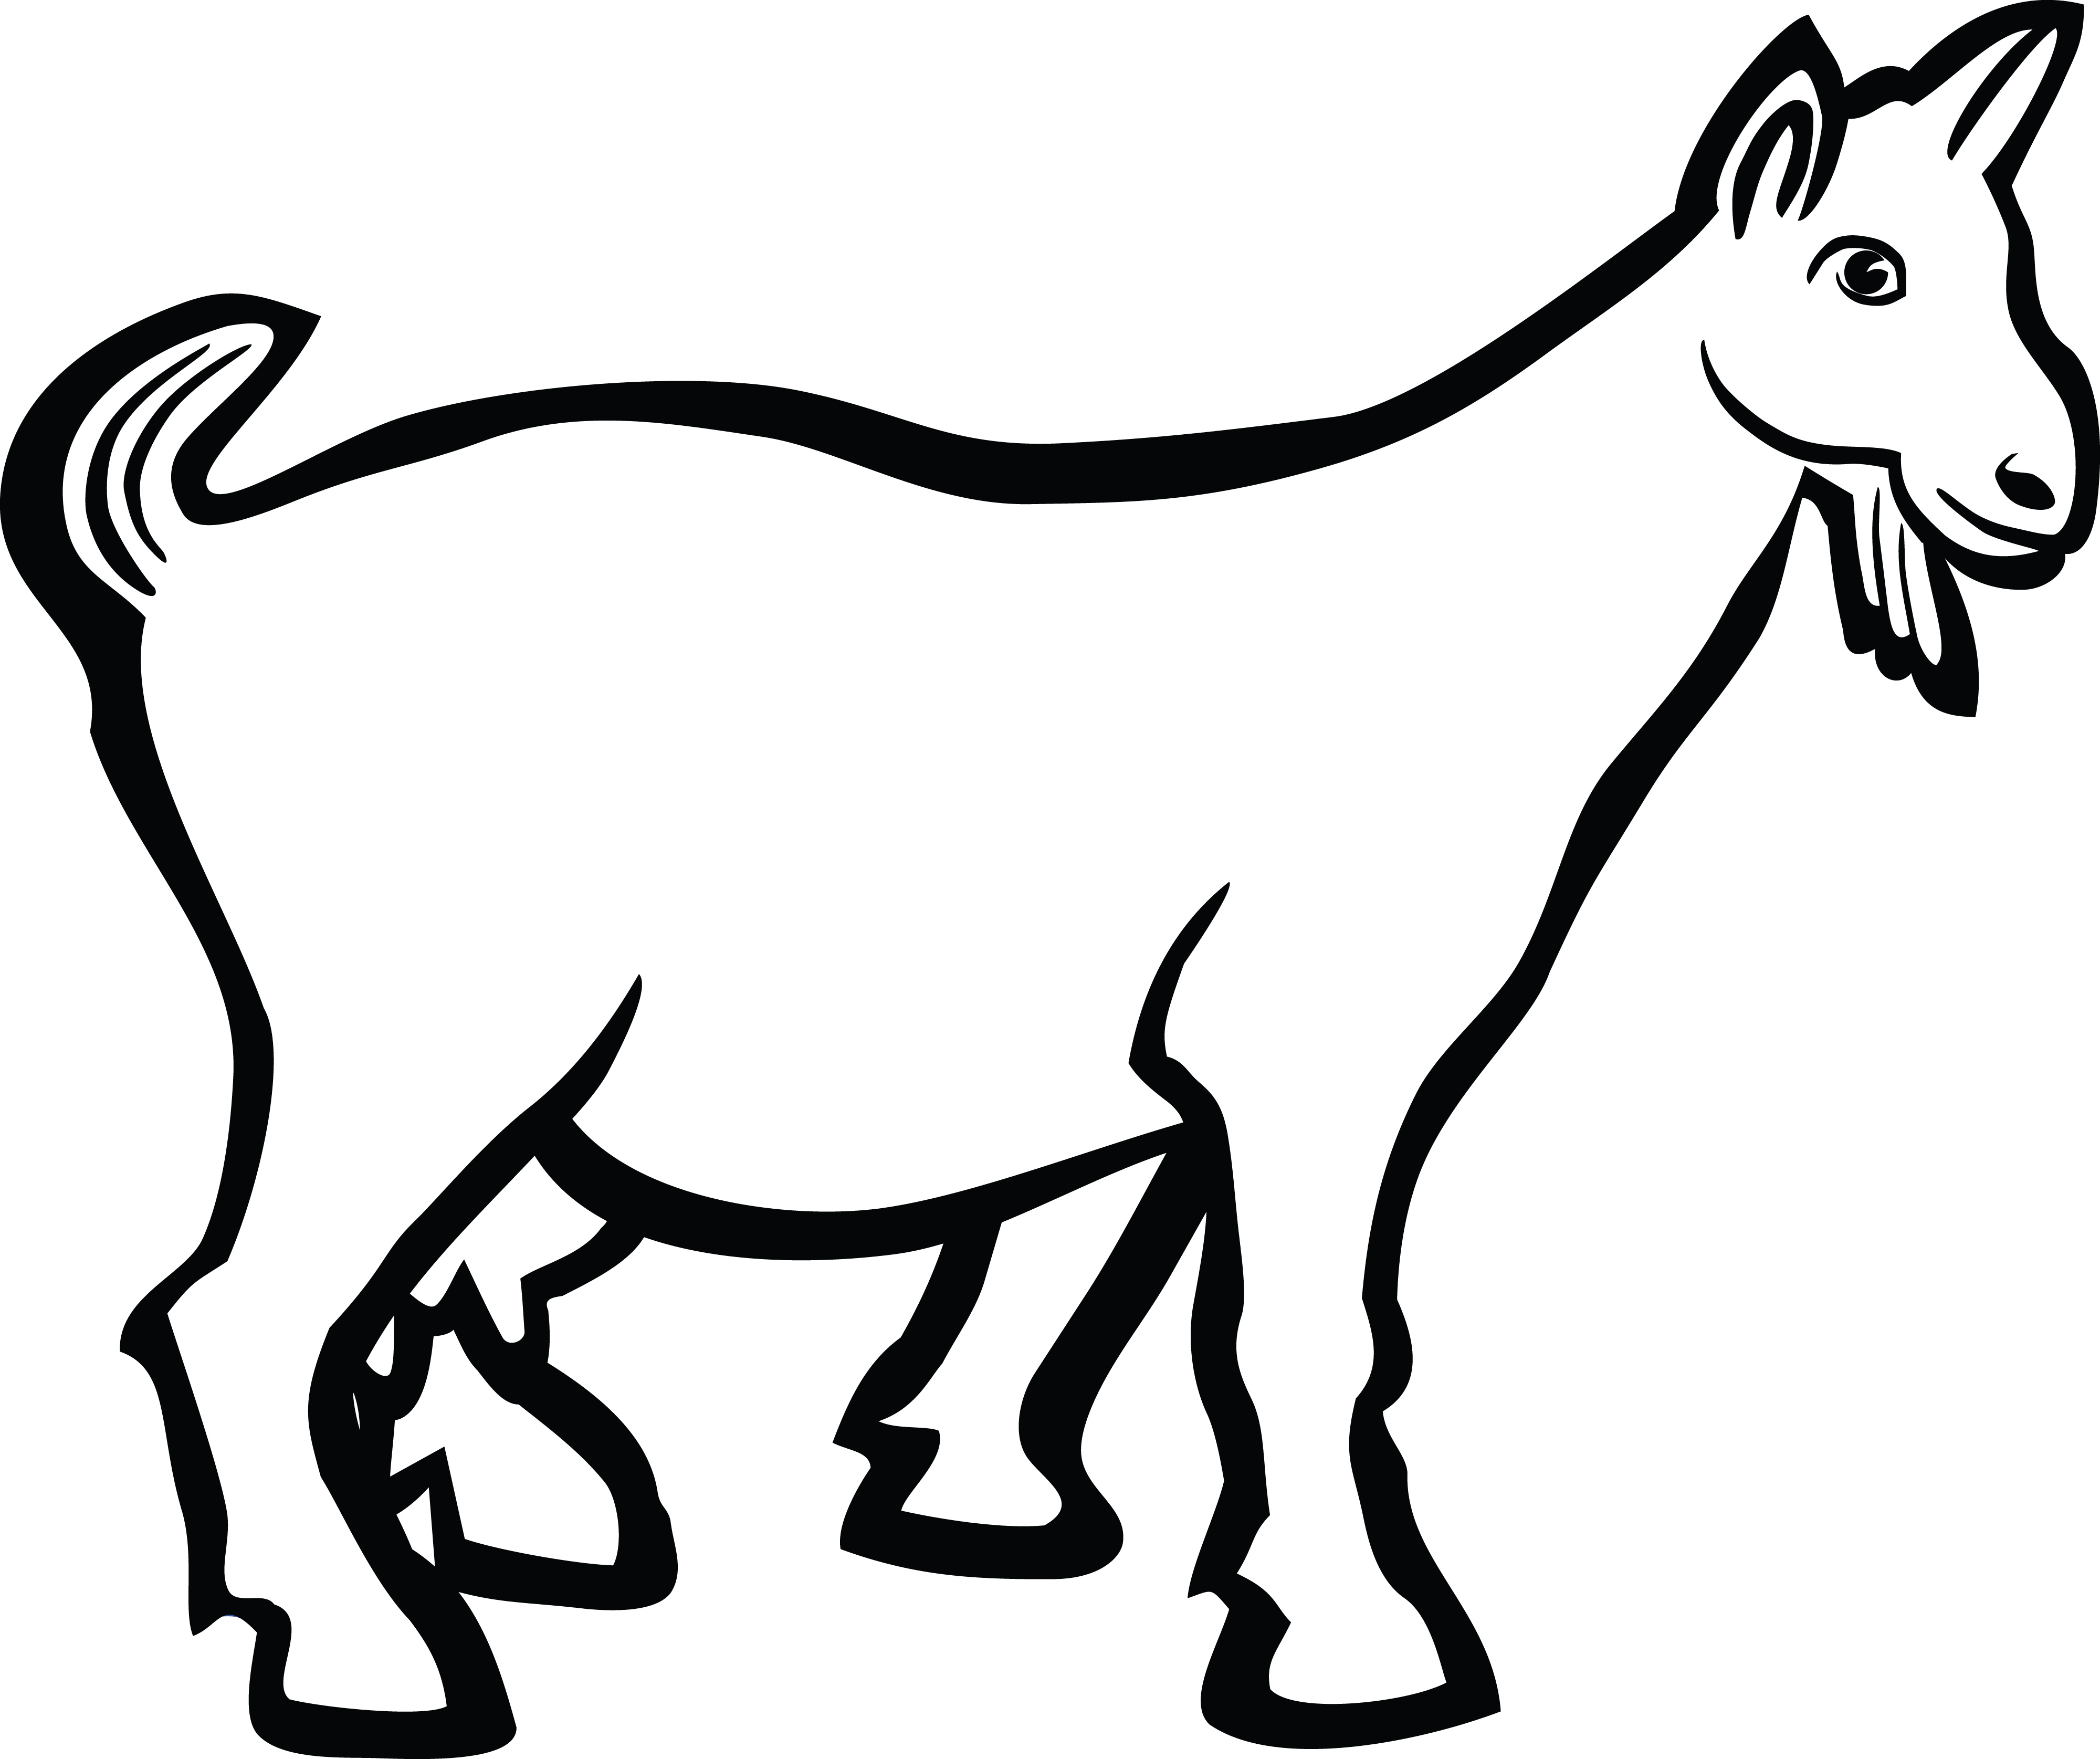 Free Clipart Of A goat.